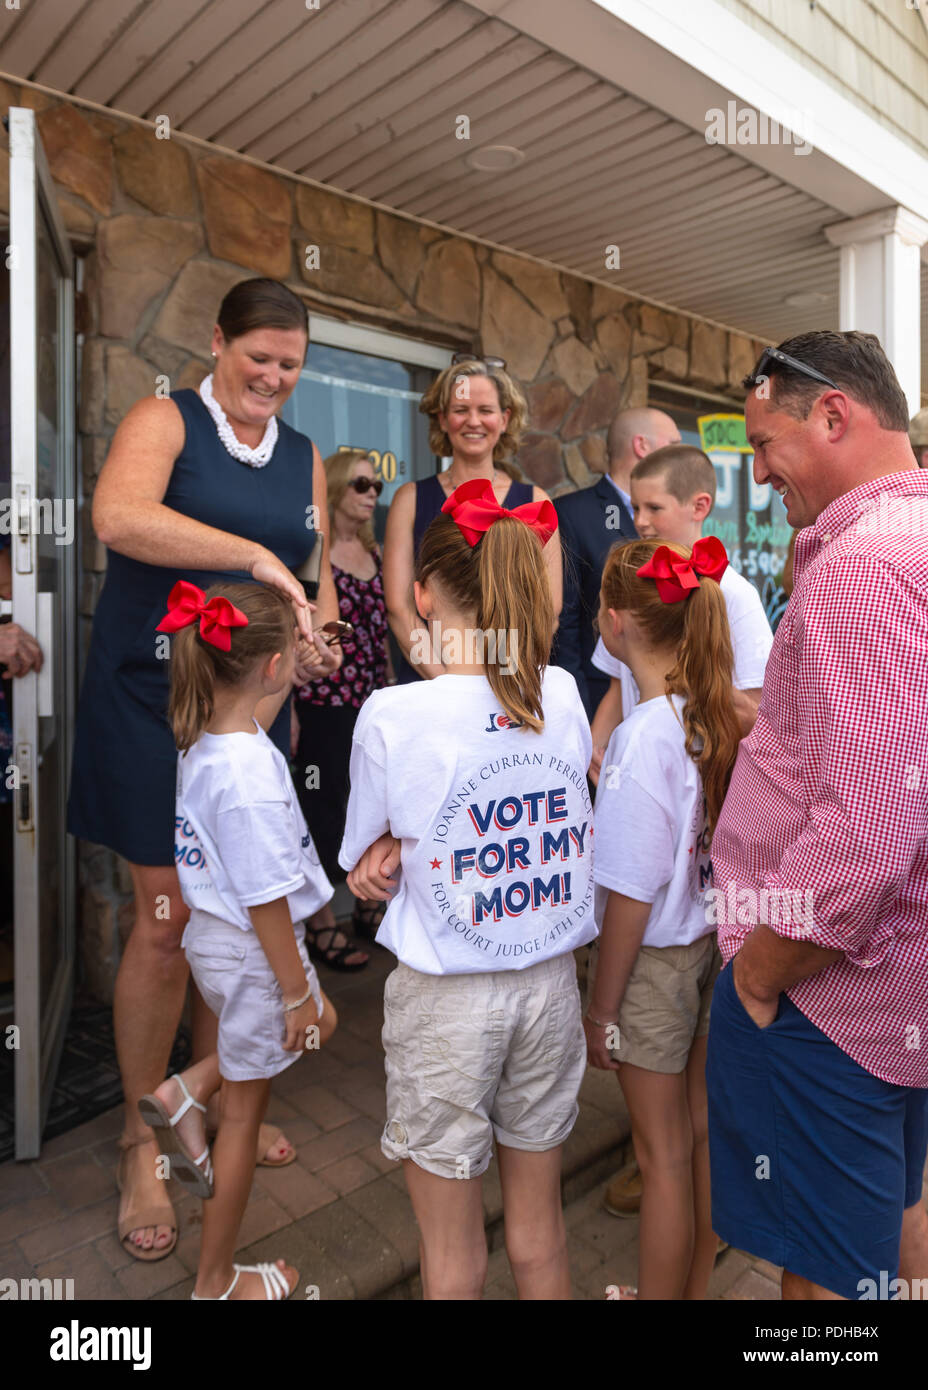 Massapequa, New York, USA. 5th Aug, 2018. Massapequa, New York, USA. August 5, 2018. L-R, JOANNE CURRAN PERRUCCI, candidate for Court Judge 4th District; and LAURA CURRAN, Nasssau County Executive, are smiling with Perrucci's four children, at opening of fellow Democrats' campaign office, aiming for a Democratic Blue Wave in November midterm elections. Credit: Ann Parry/ZUMA Wire/Alamy Live News - Stock Image